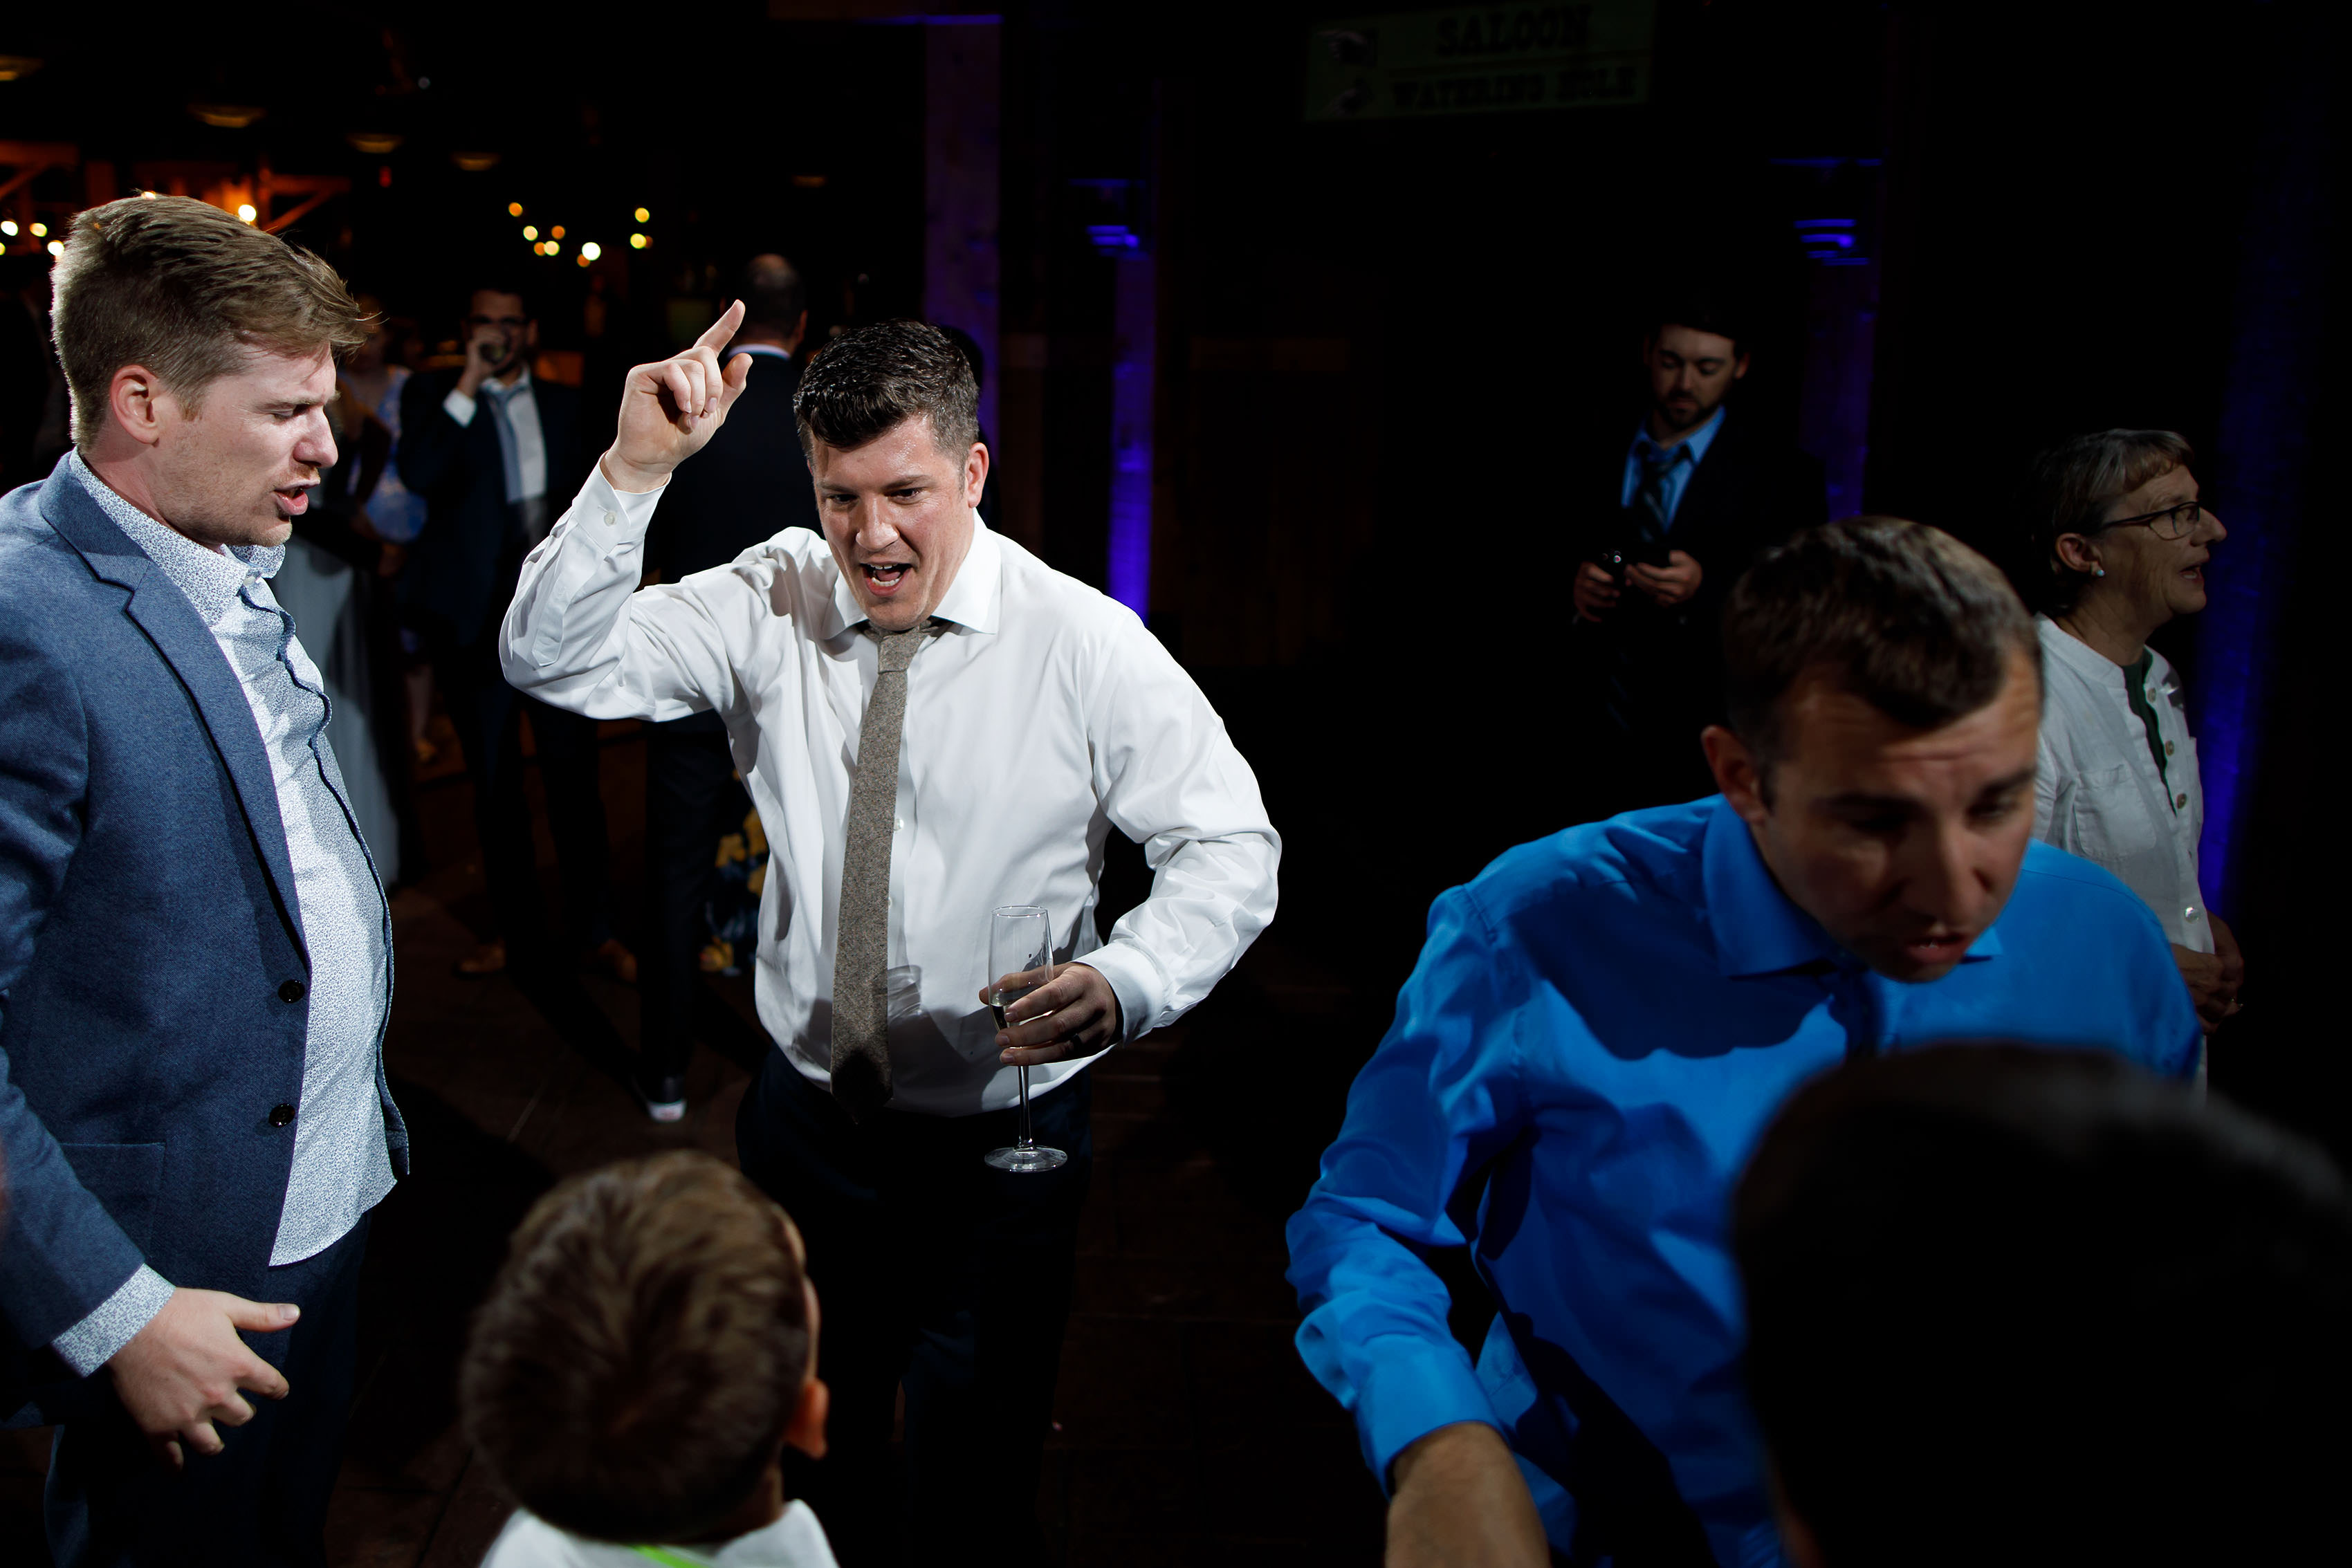 Guests dance at Heather and Matt wedding at TenMile